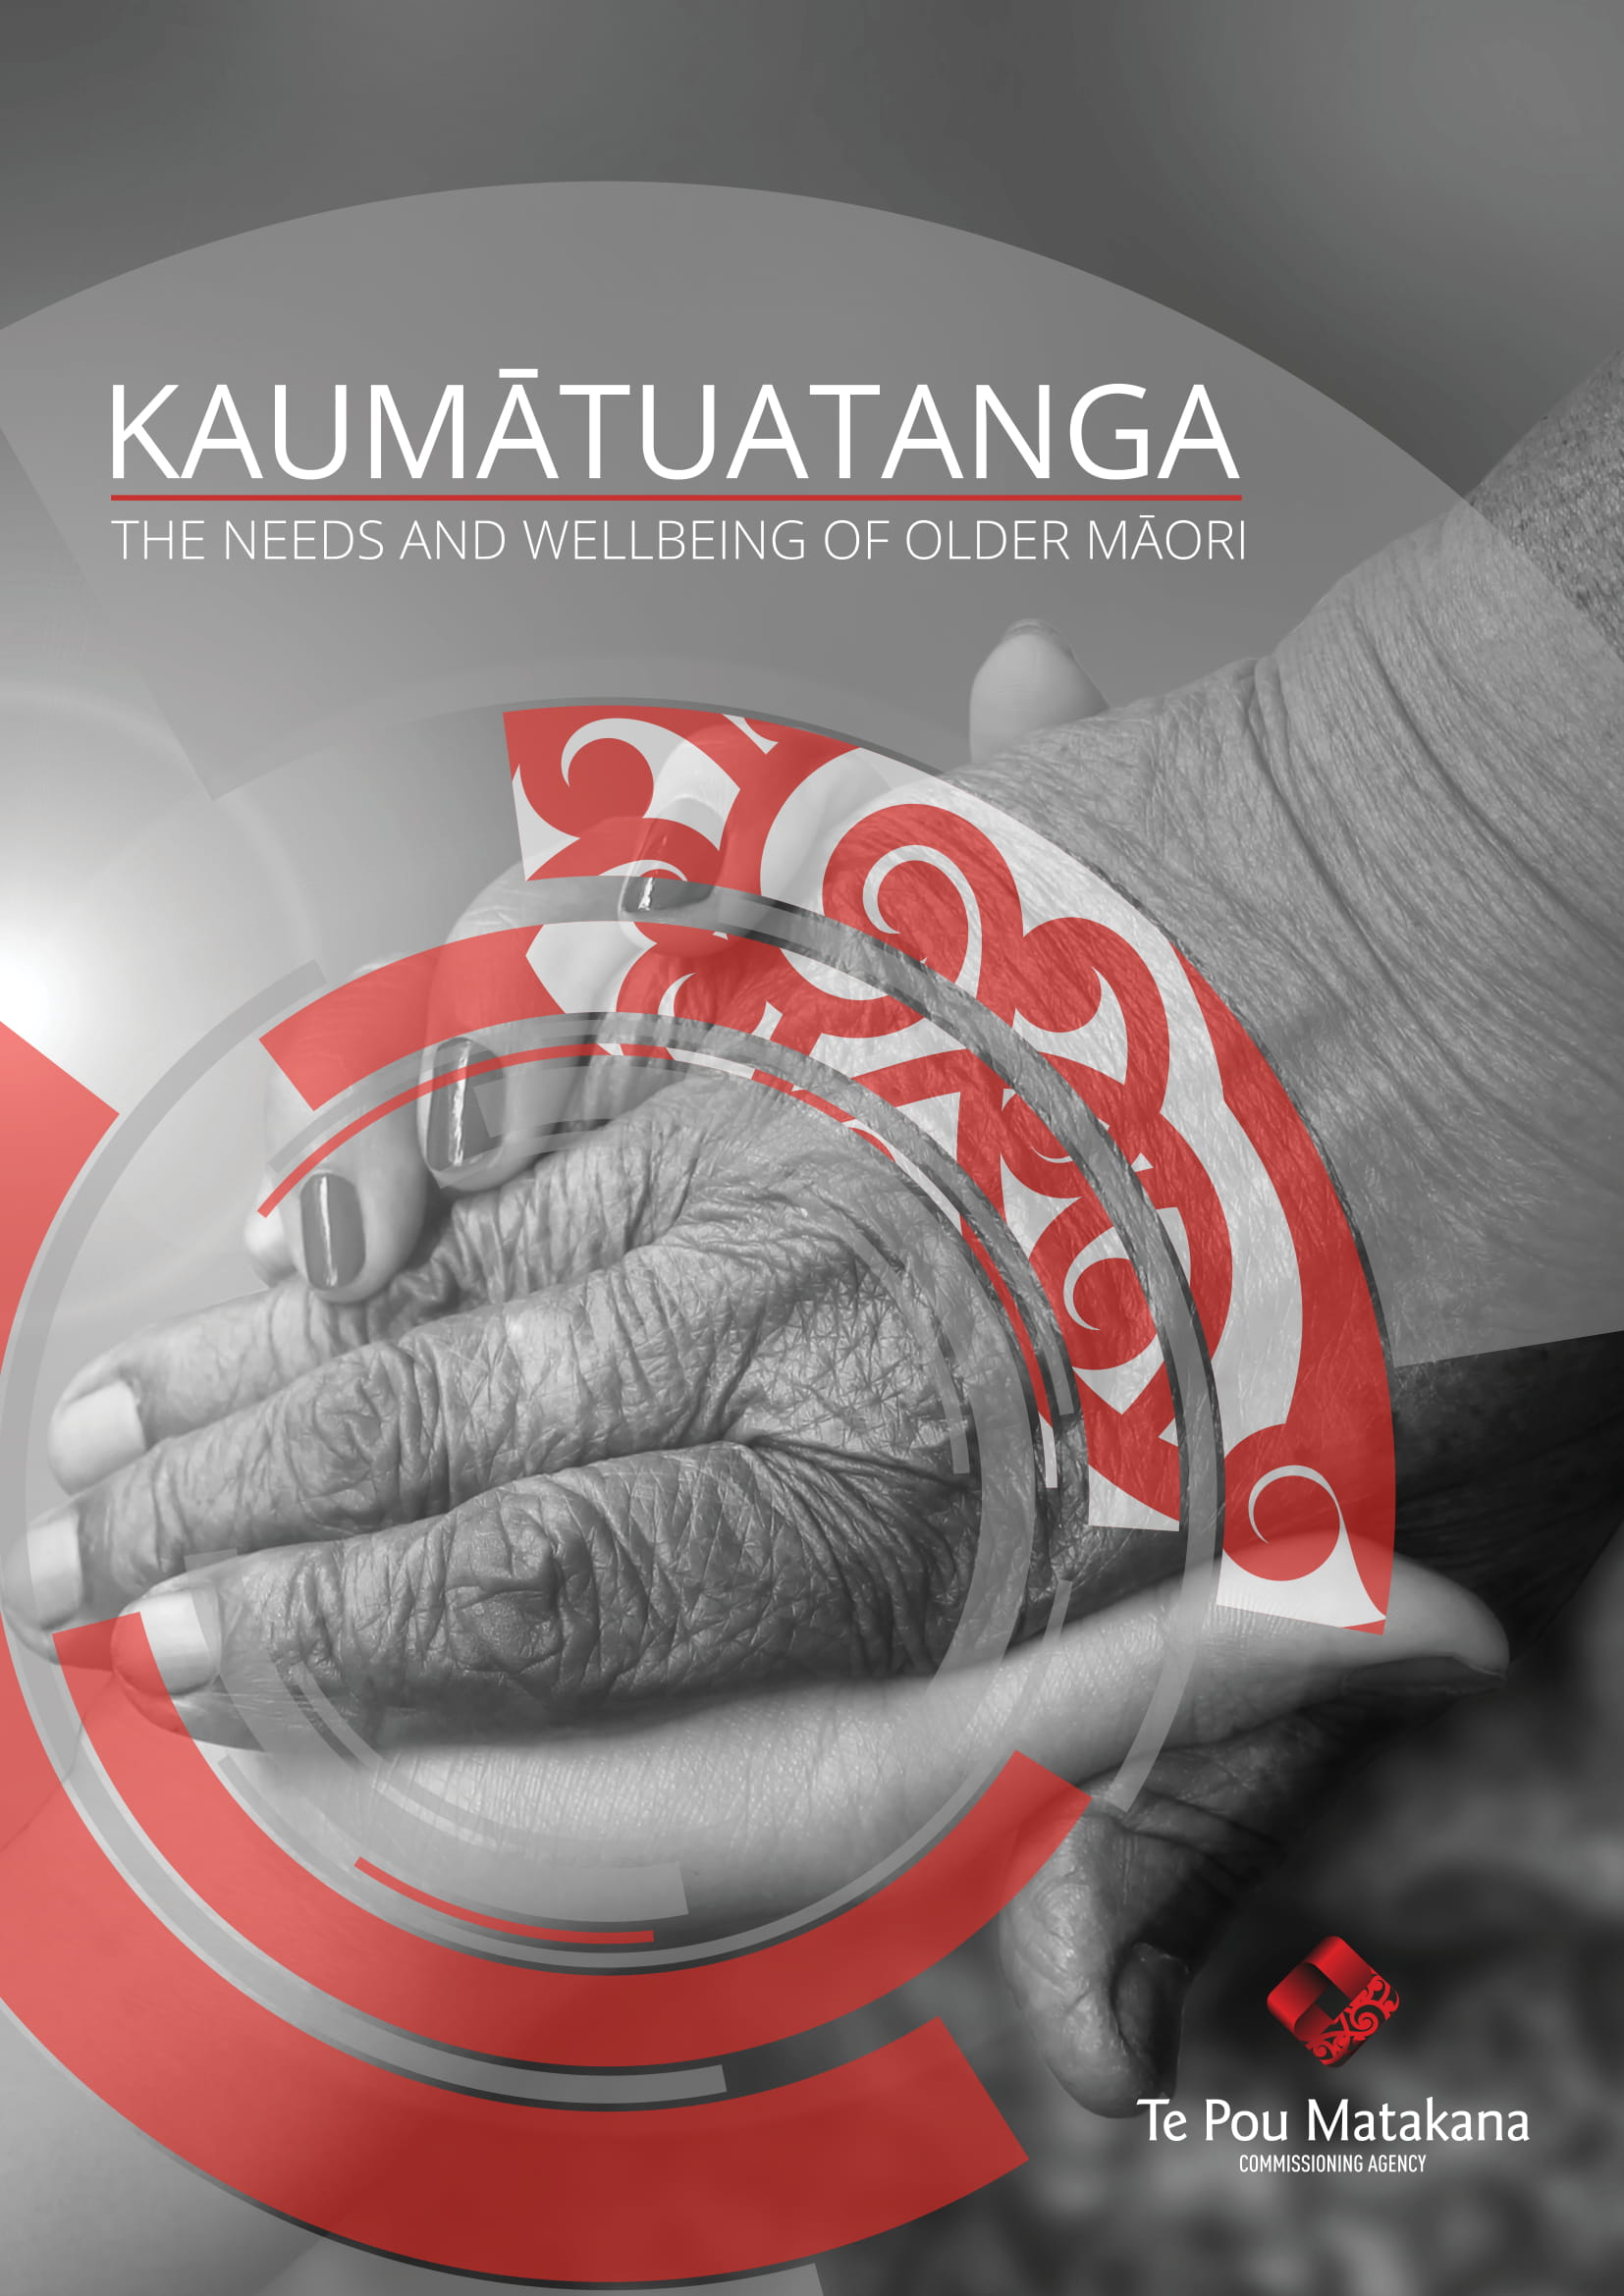 Kaumatuatanga Needs and Wellbeing of older Maori_final__3.8.18-01